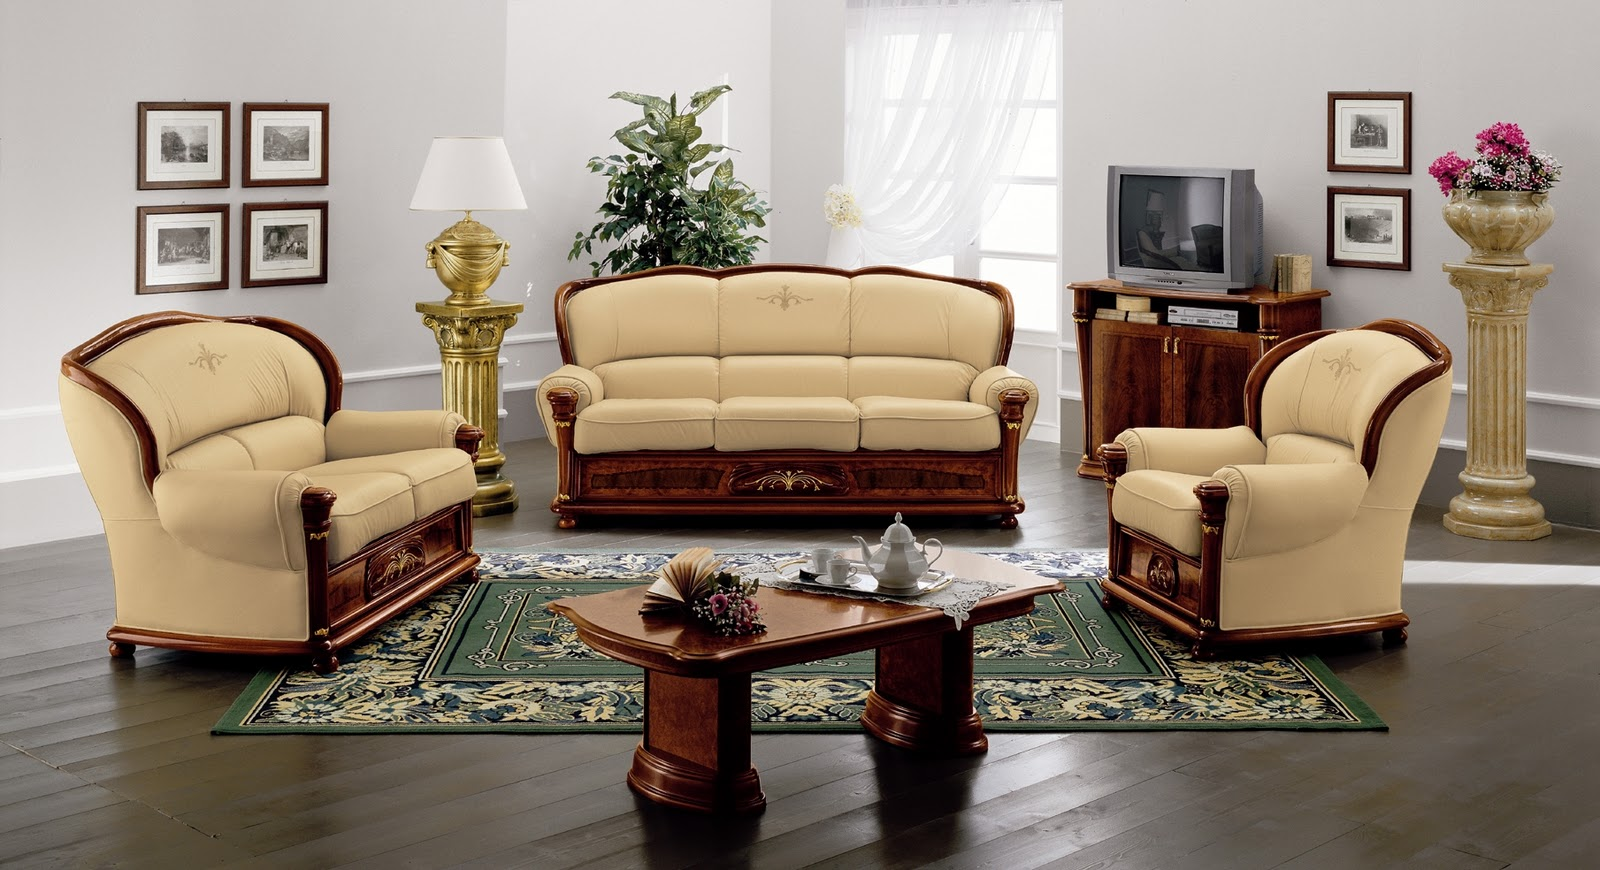 Living room sofa design photos living room interior designs for Interior designs sofa